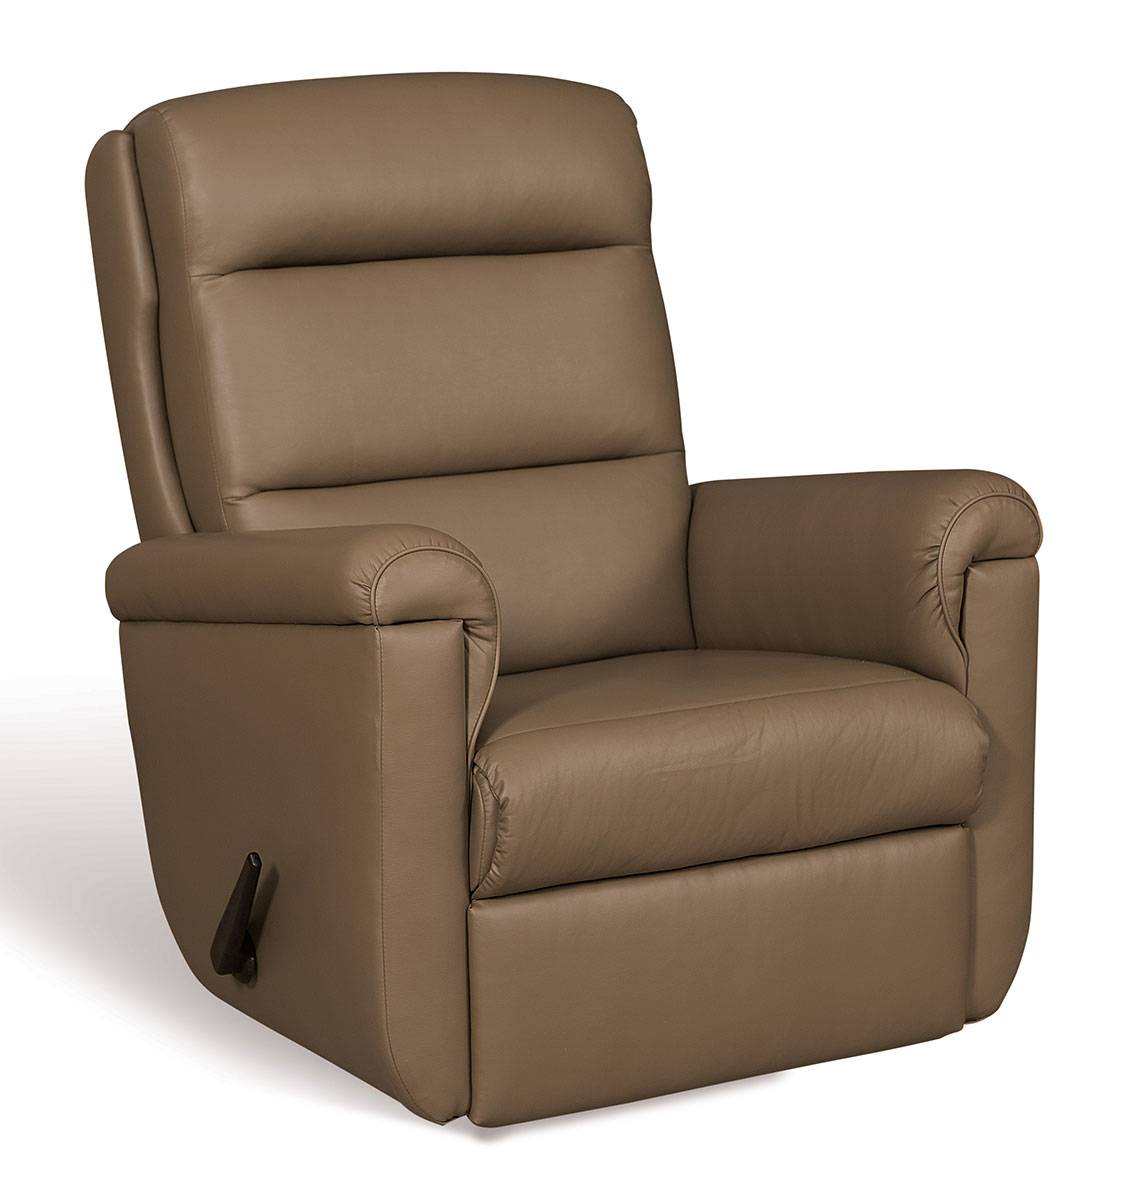 Top 4 Comfortable Chairs For Living Room: Northern Indiana Woodcrafters